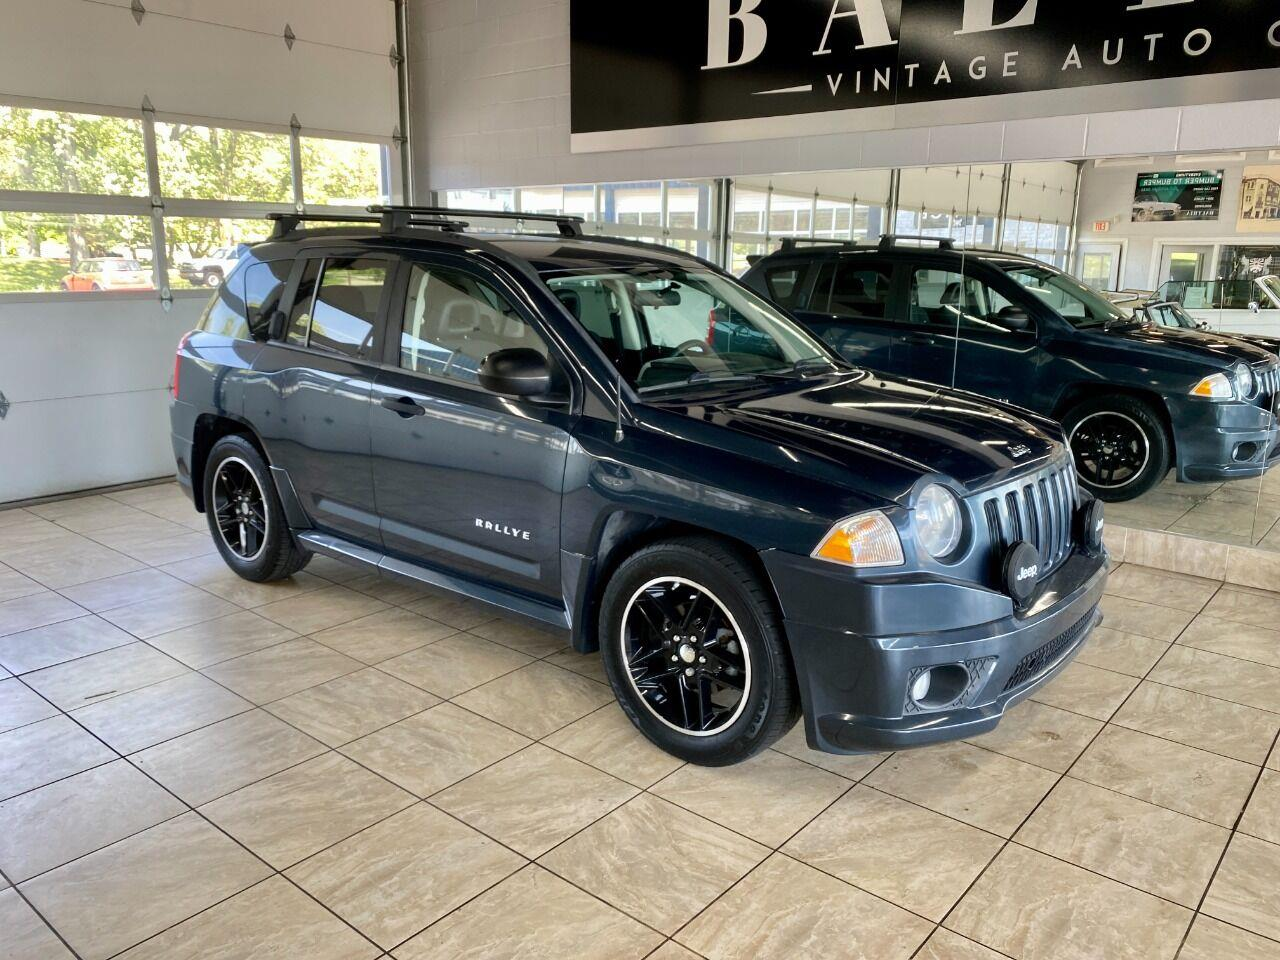 for sale 2008 jeep compass in st. charles, illinois cars - saint charles, il at geebo